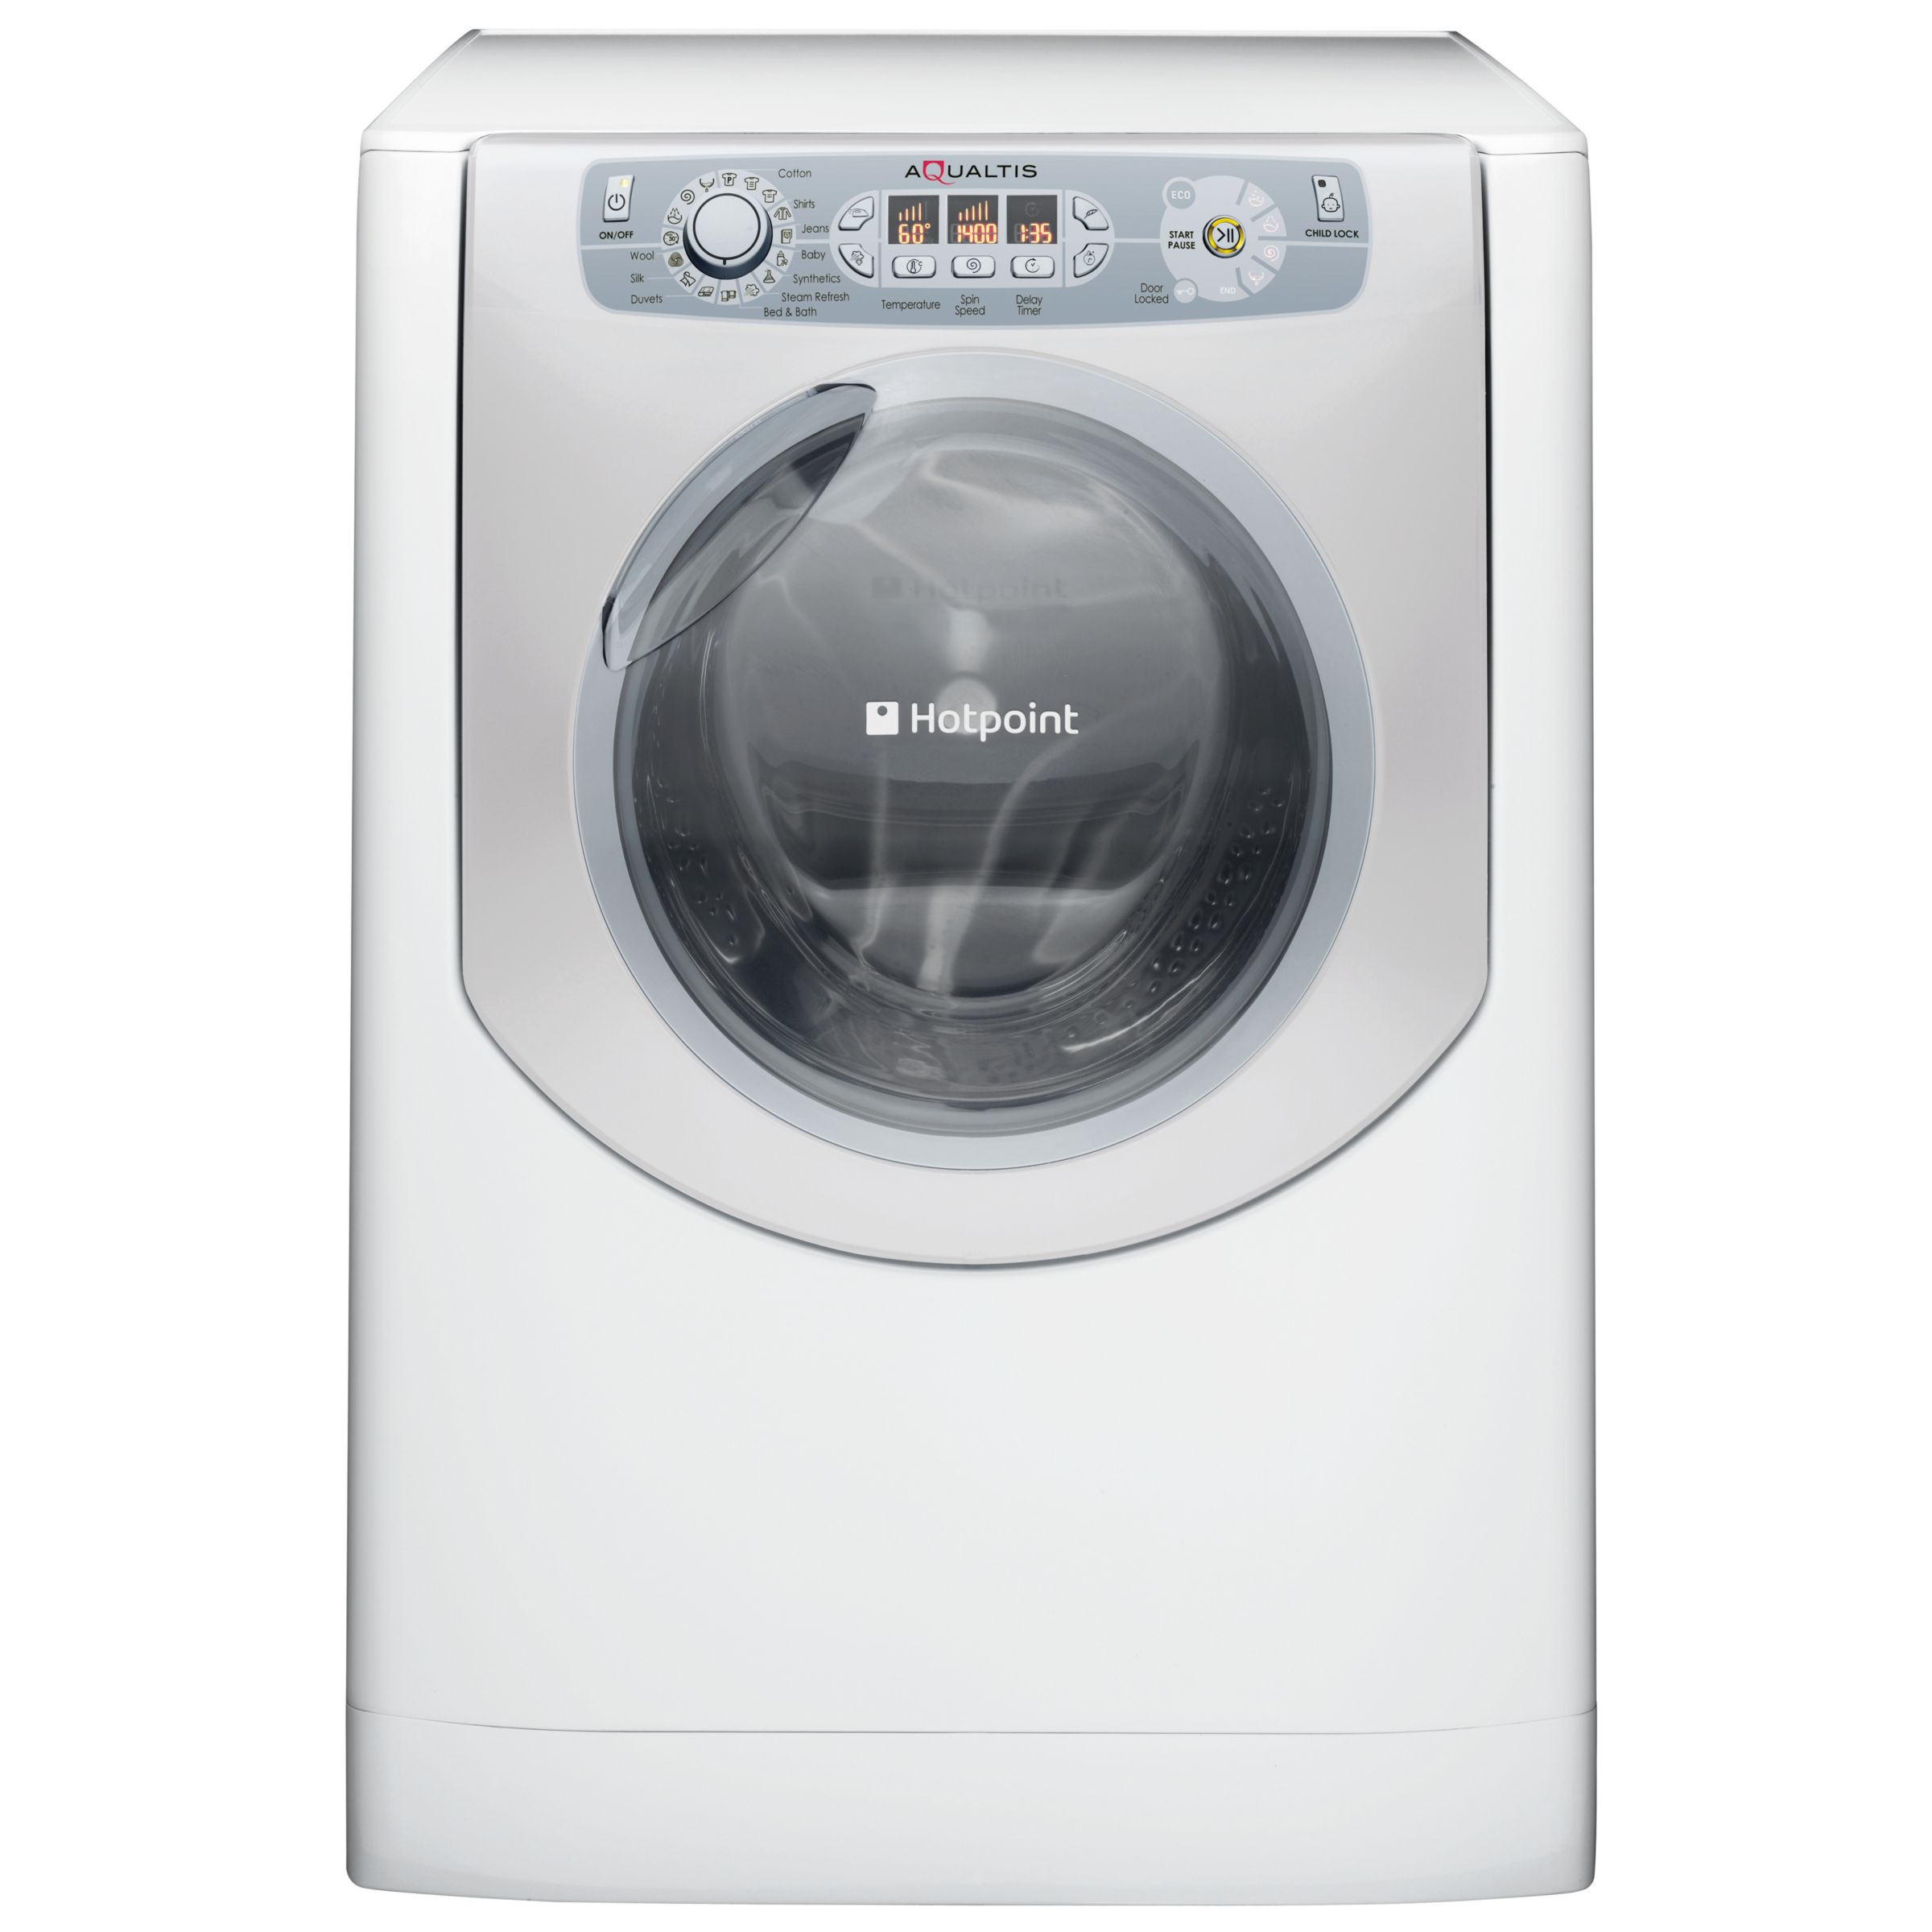 Hotpoint Aqualtis AQ9F492IU Washing Machine, White